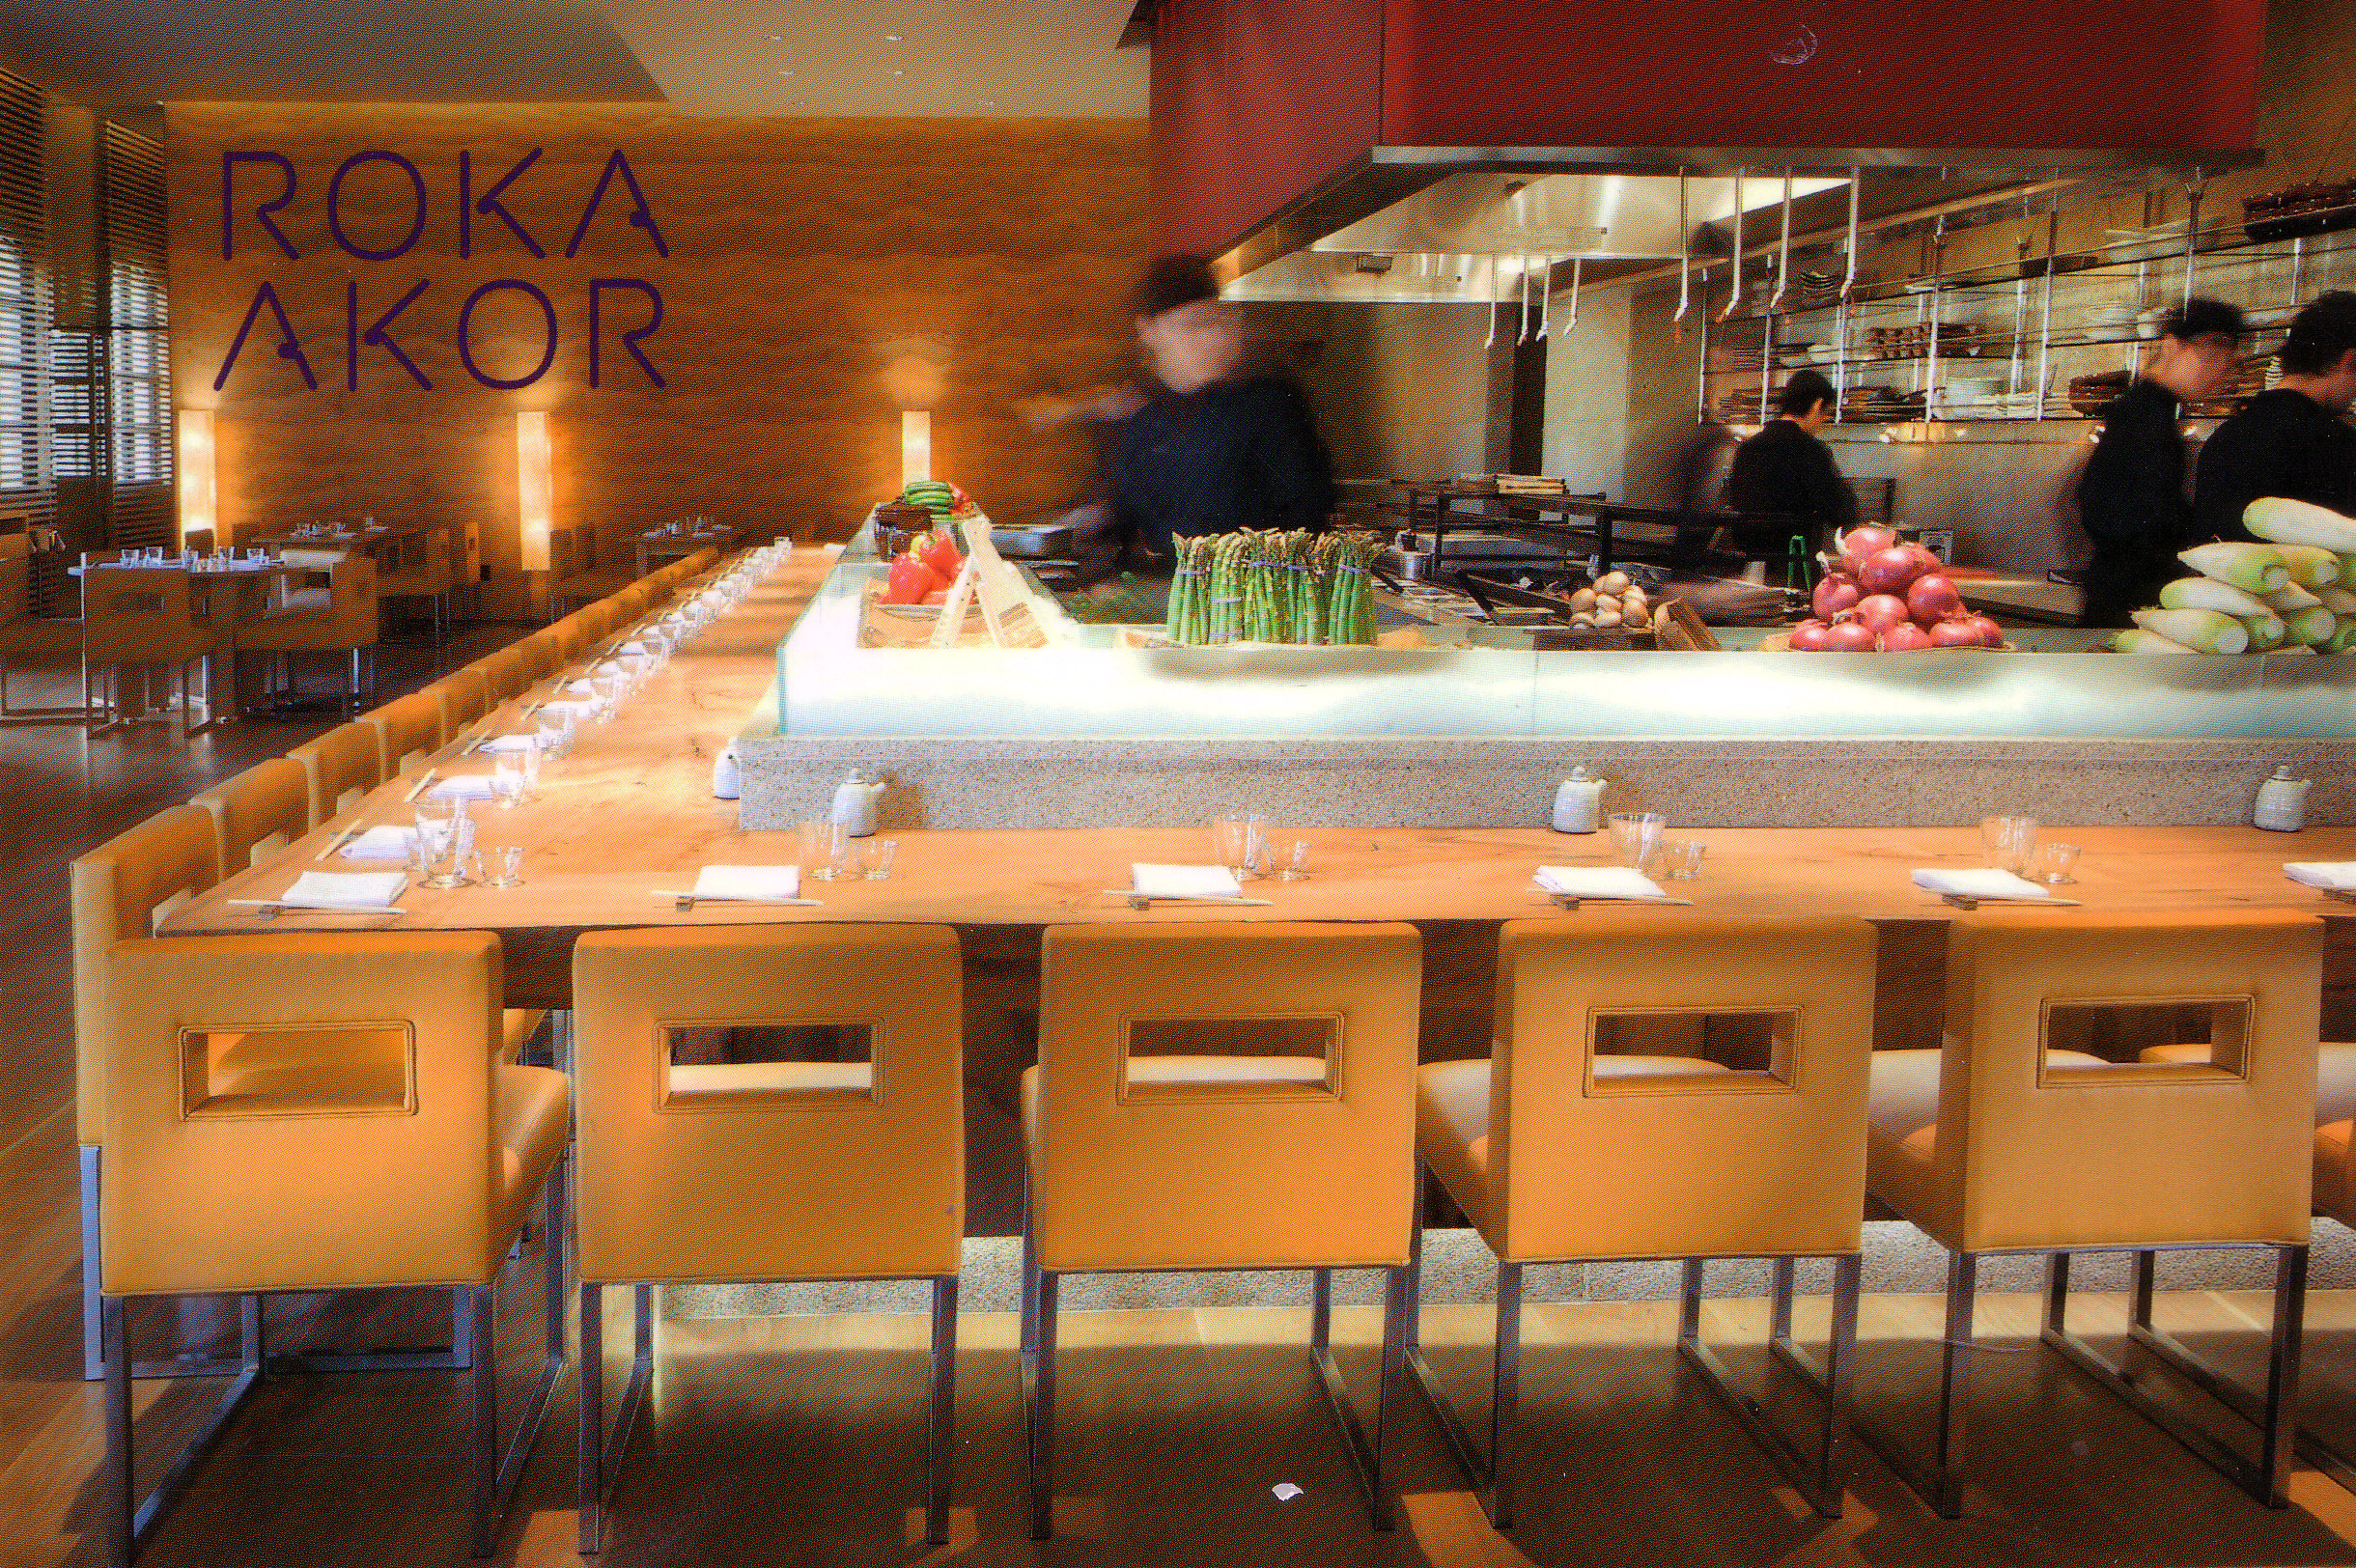 Bar seating at Roka Akor